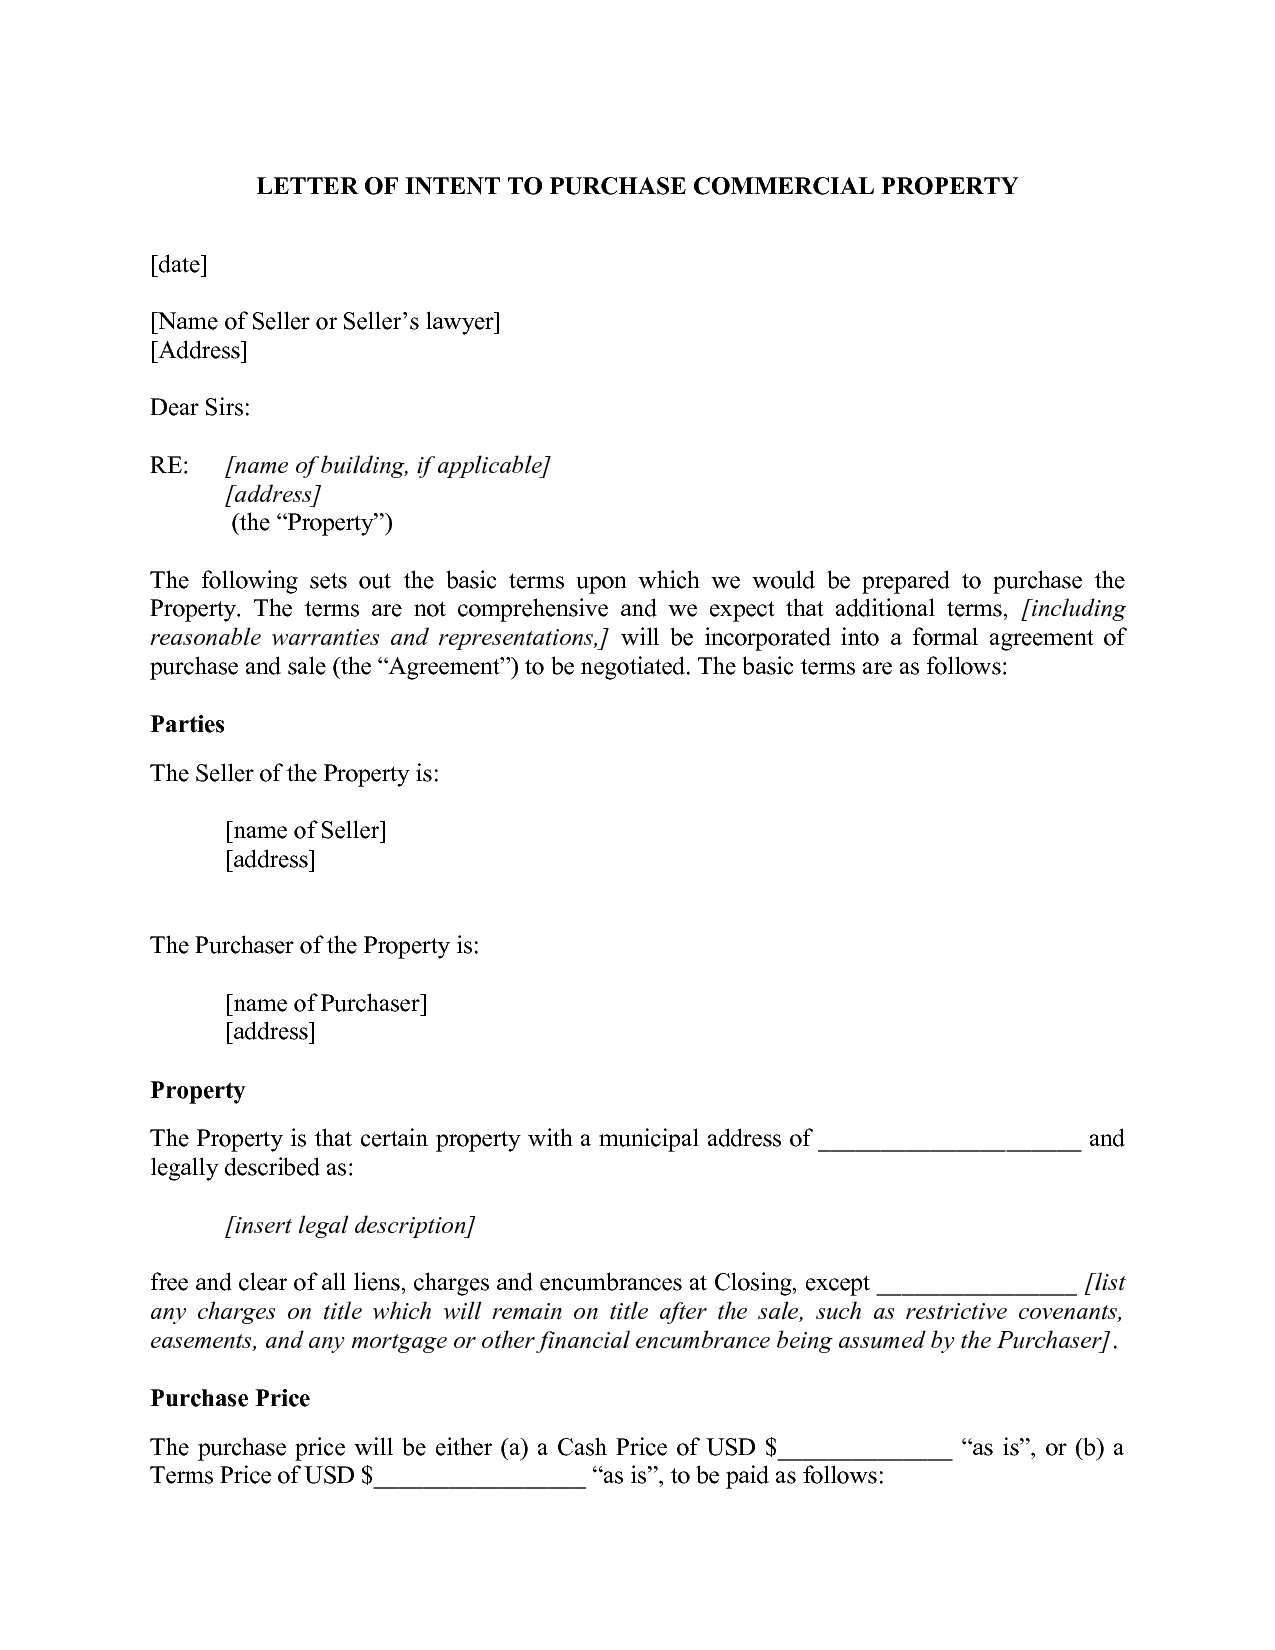 Letter Of Intent to Lease Commercial Property Template - Sample Letter Intent Jpeg to Lease Mercial Property Pdf In